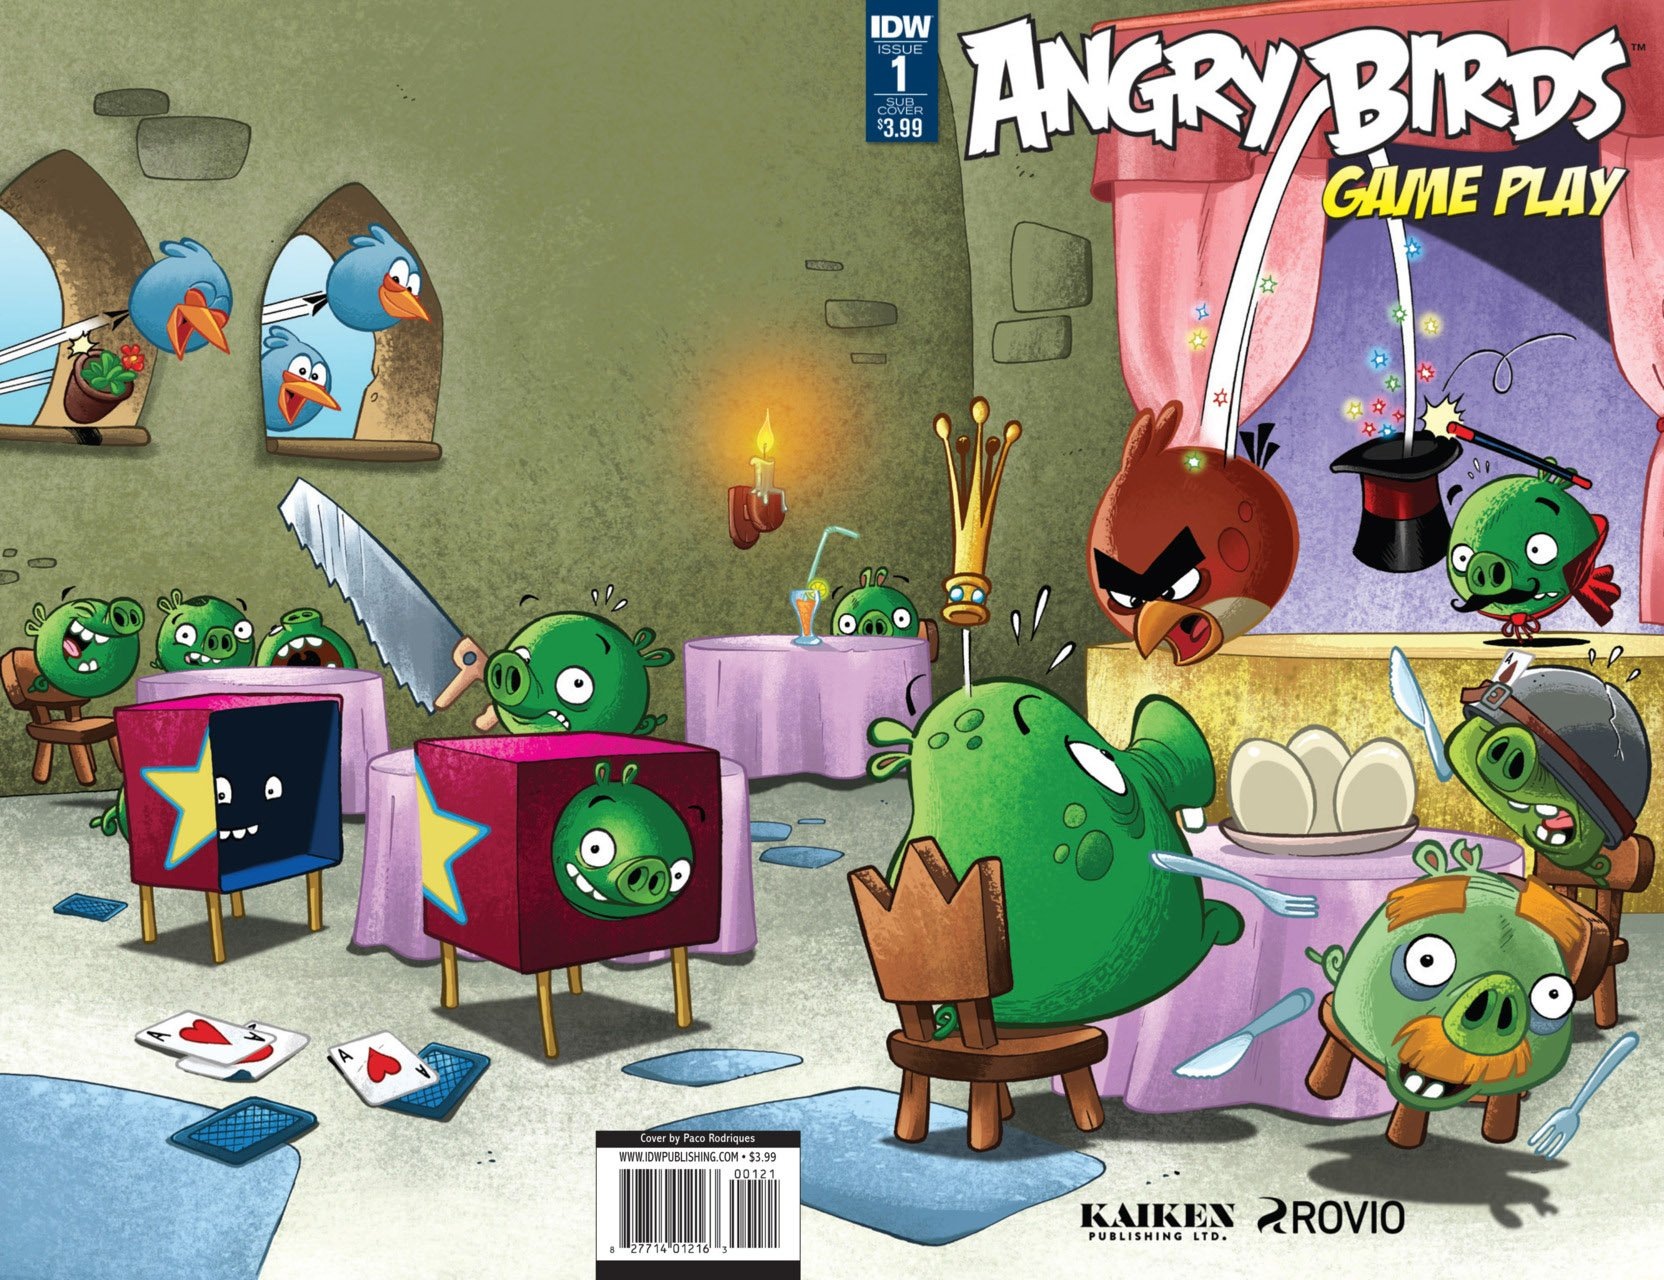 Angry Birds Comics - Game Play 001 (January 2017) (subscriber cover)